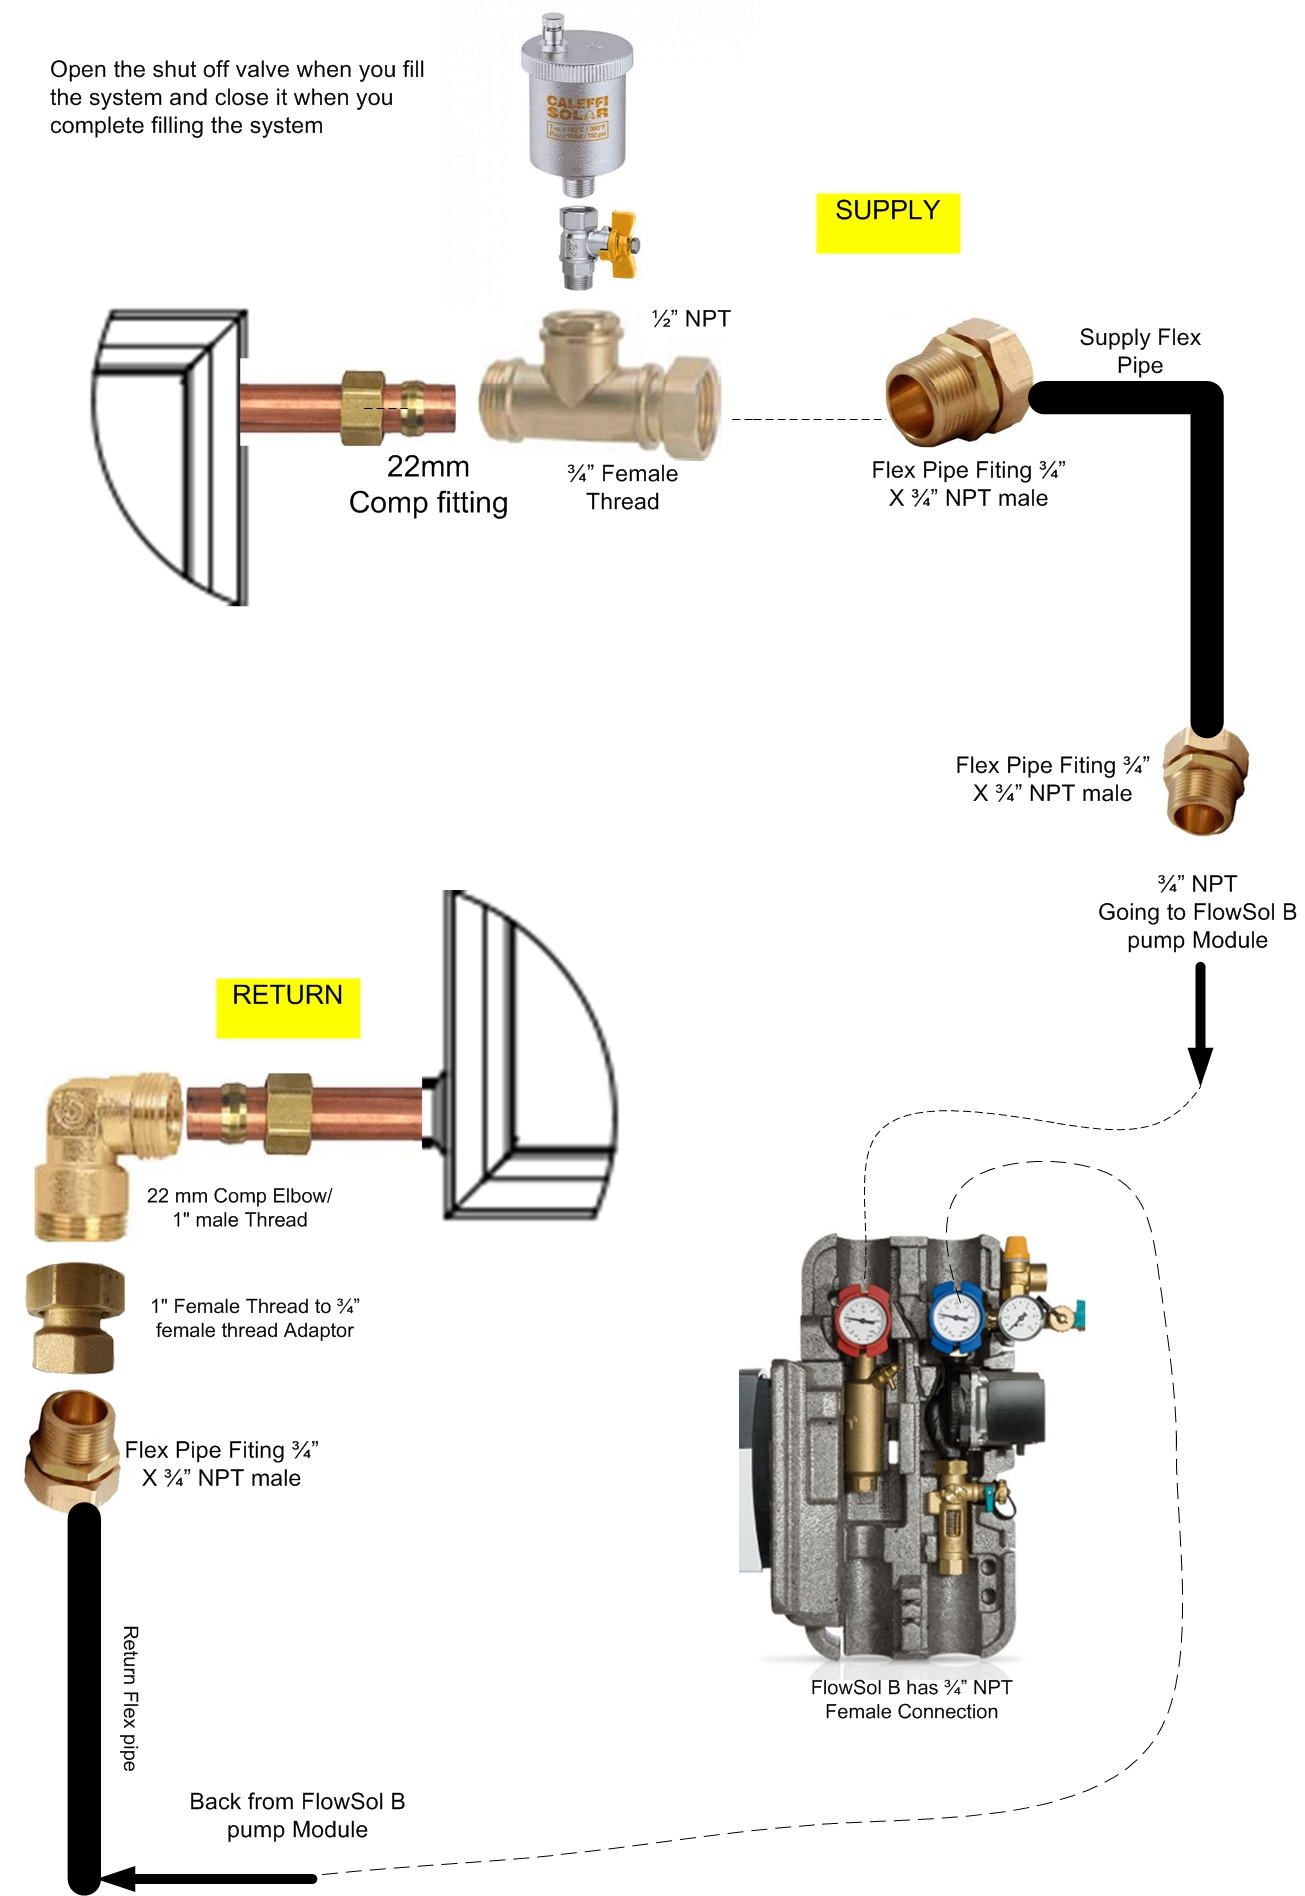 solar supply and return piping